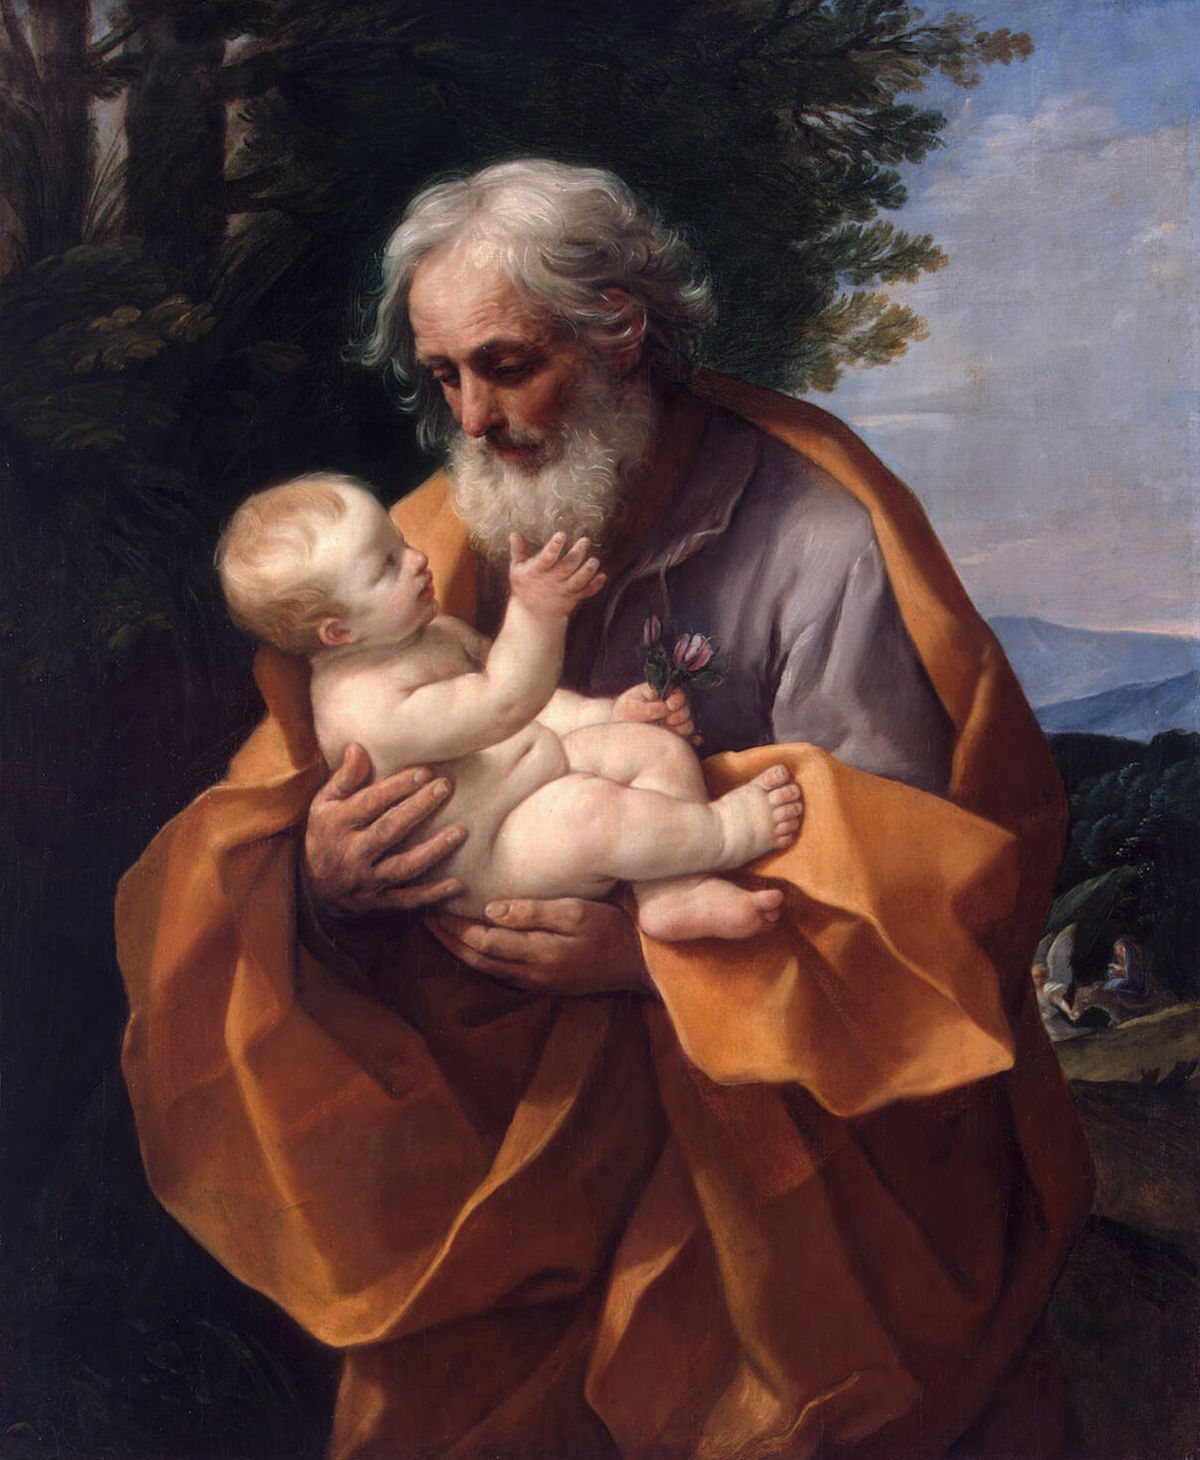 Saint_Joseph_with_the_Infant_Jesus_by_Guido_Reni_c_1635.jpg